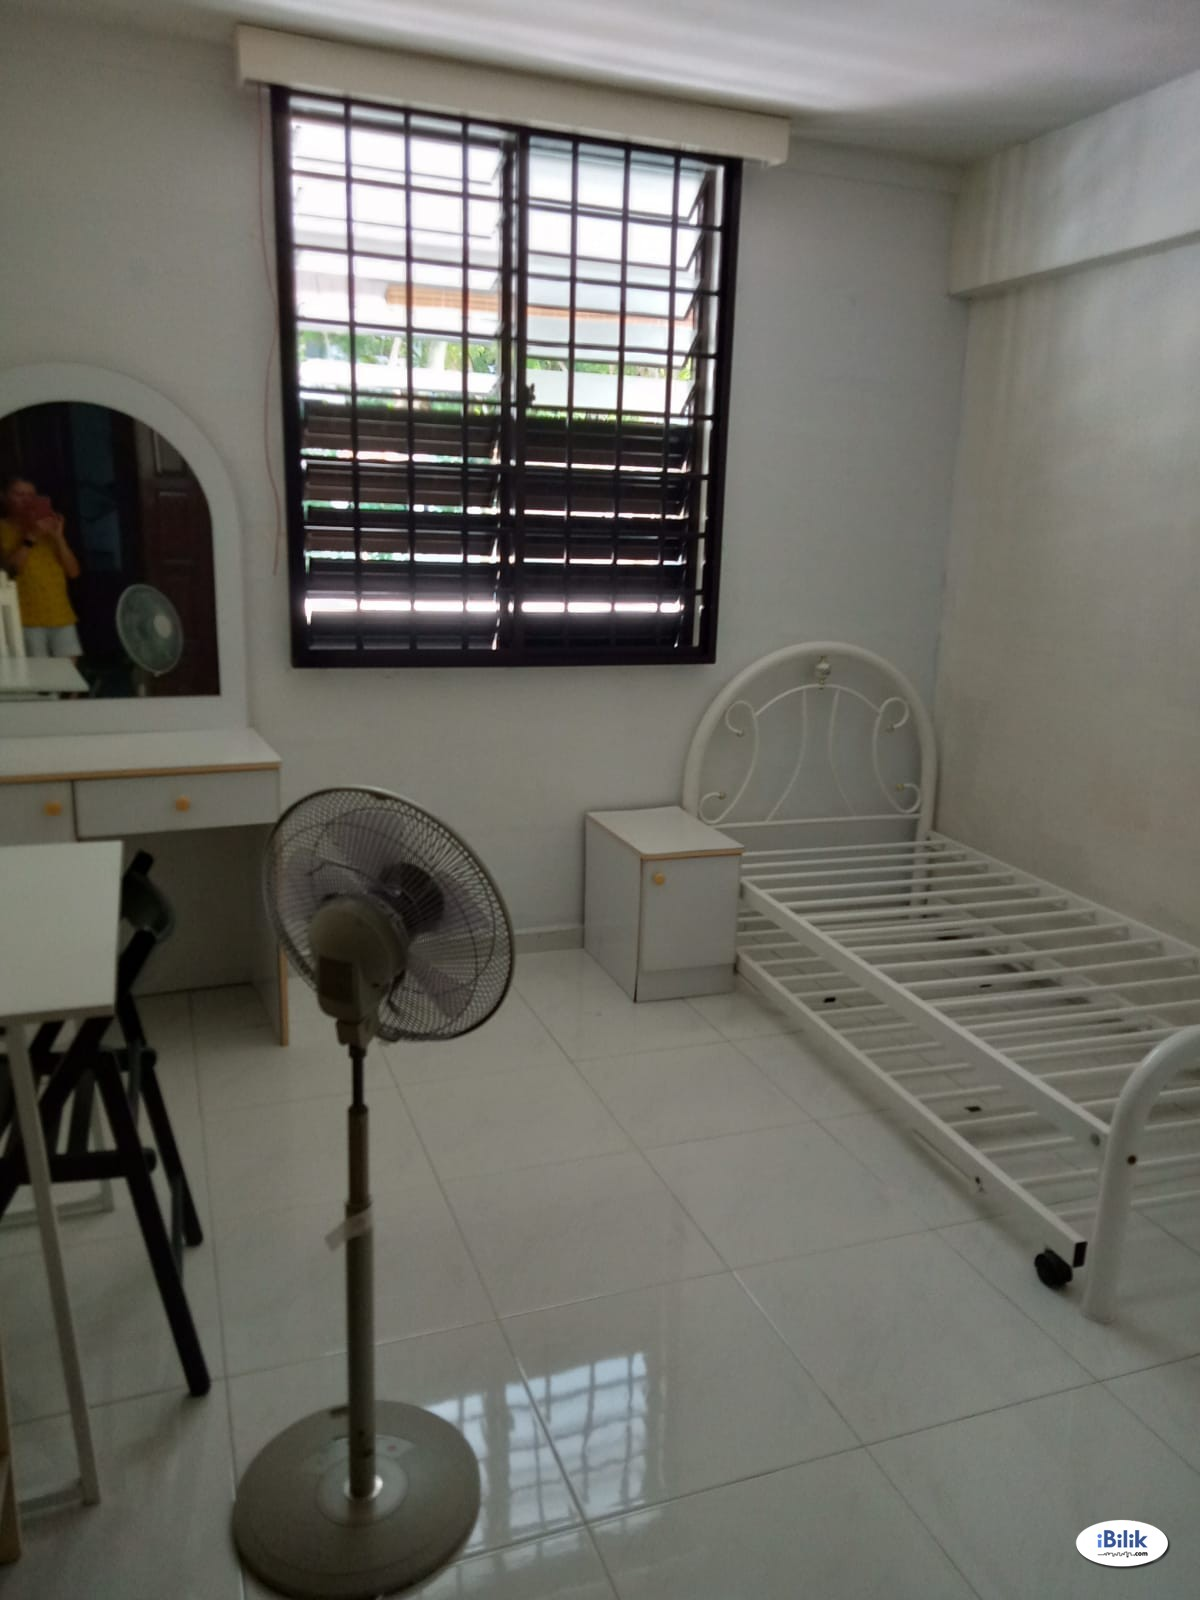 Middle Room at Toa Payoh, Singapore